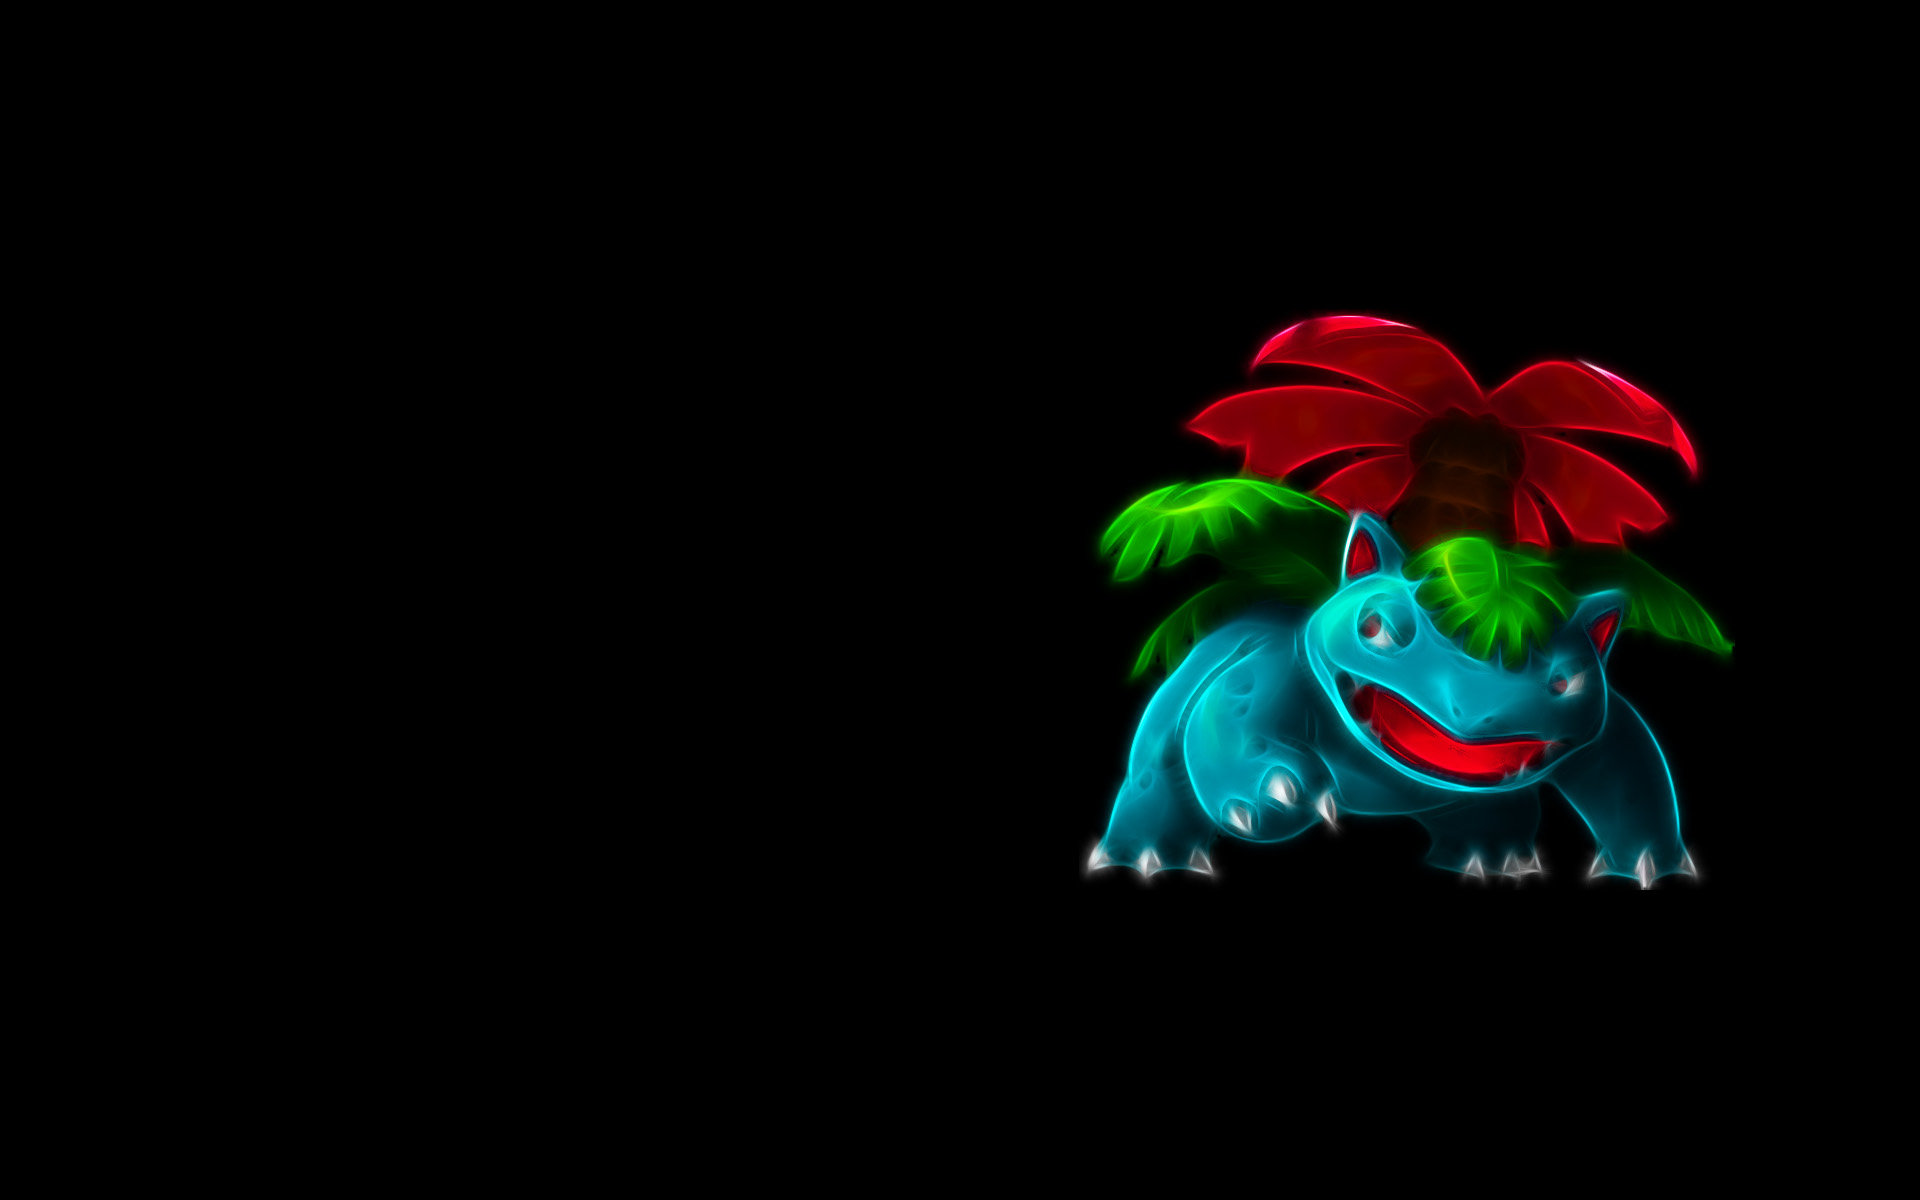 Download hd 1920x1200 Venusaur (Pokemon) PC background ID:279893 for free